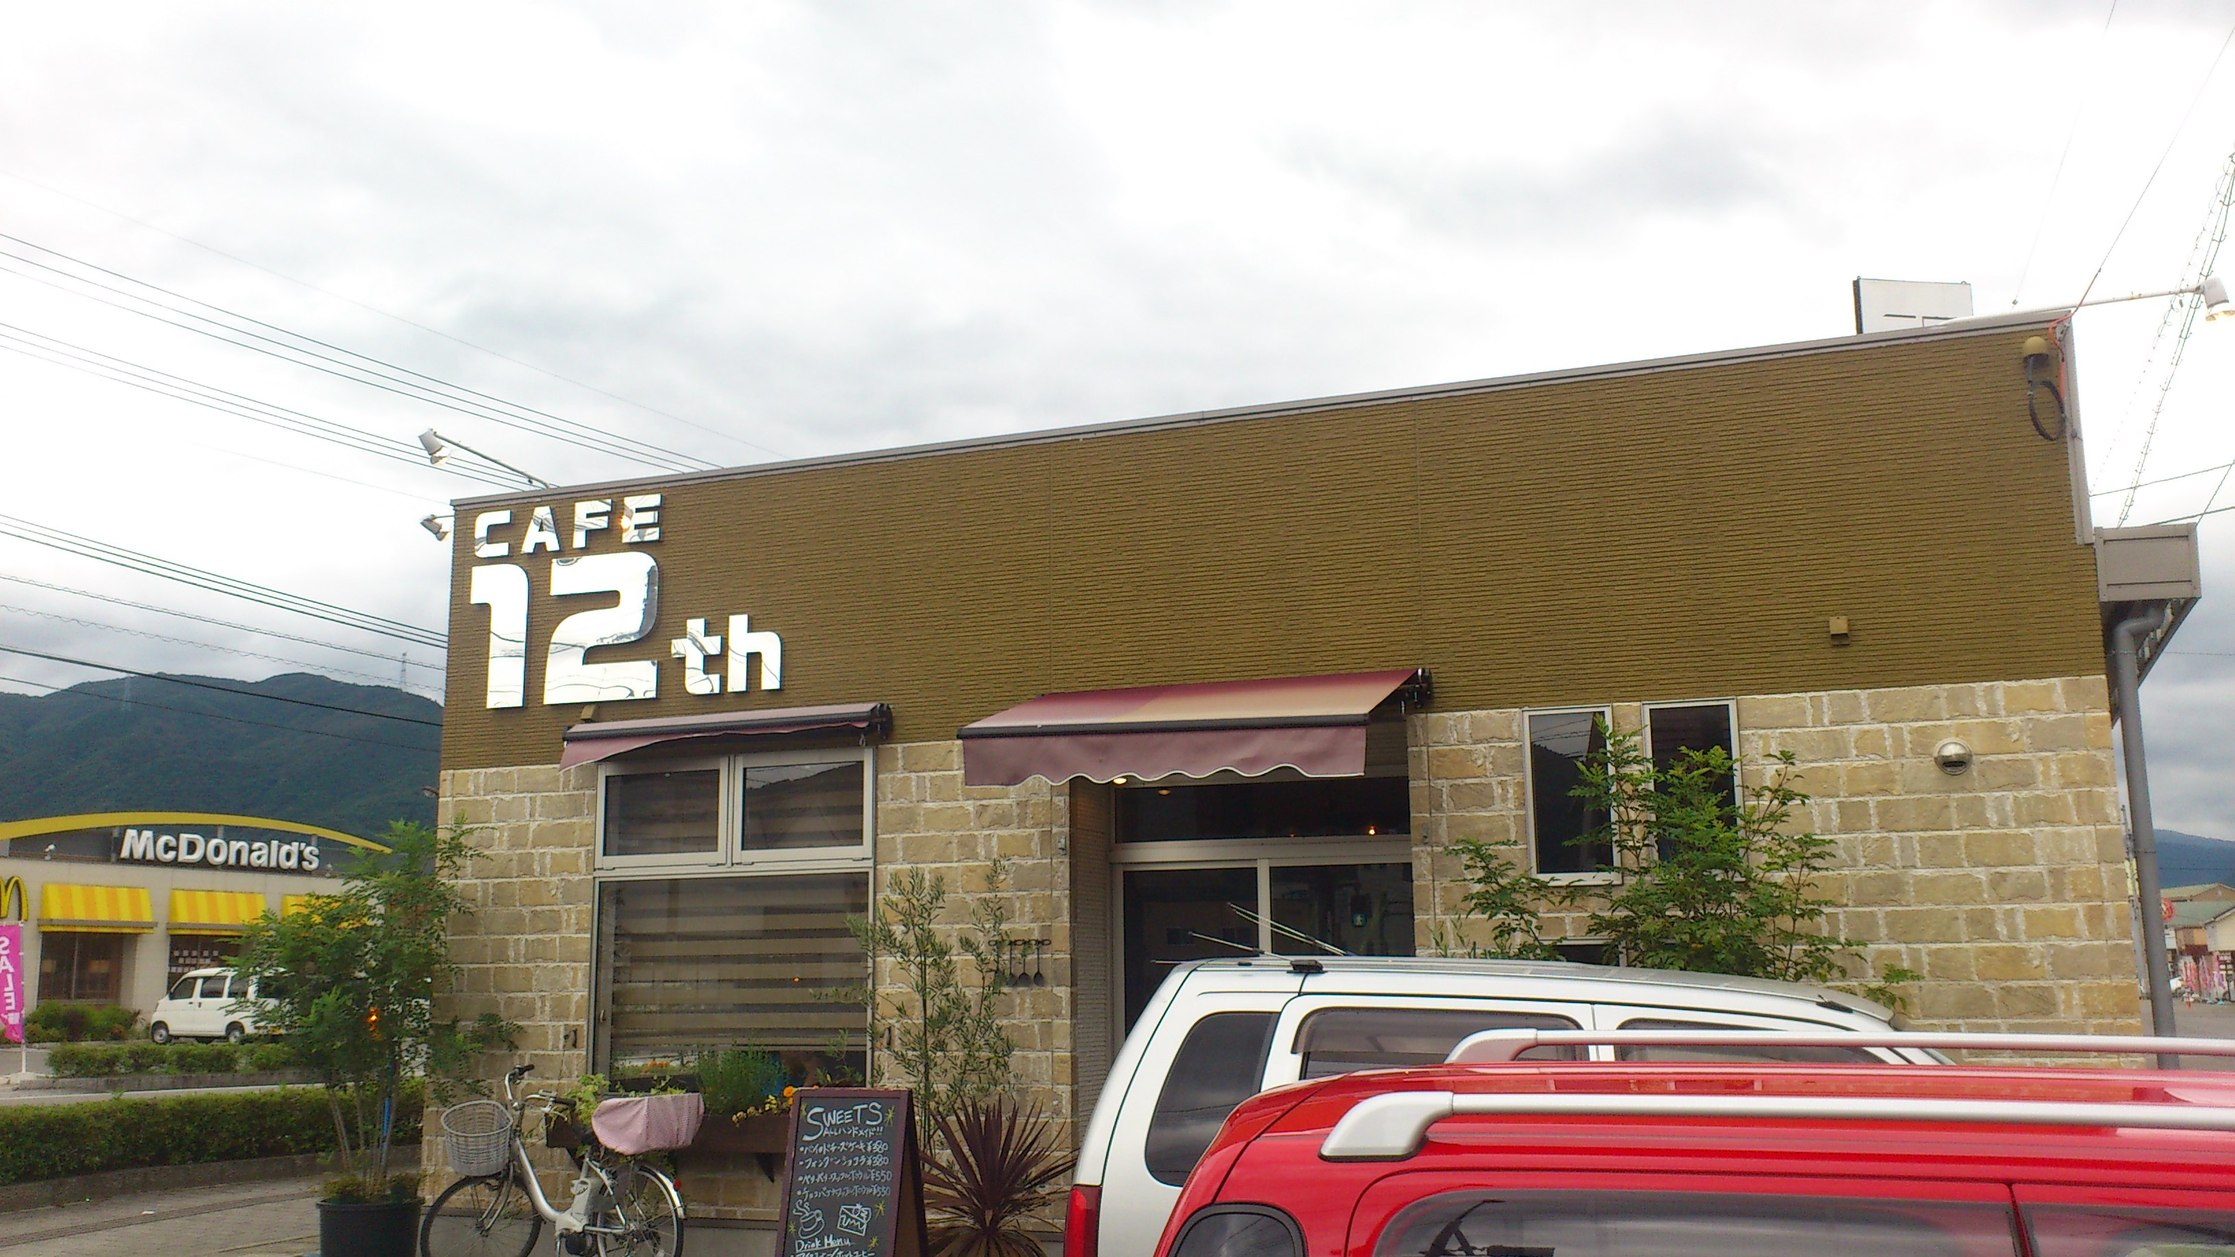 CAFE 12th